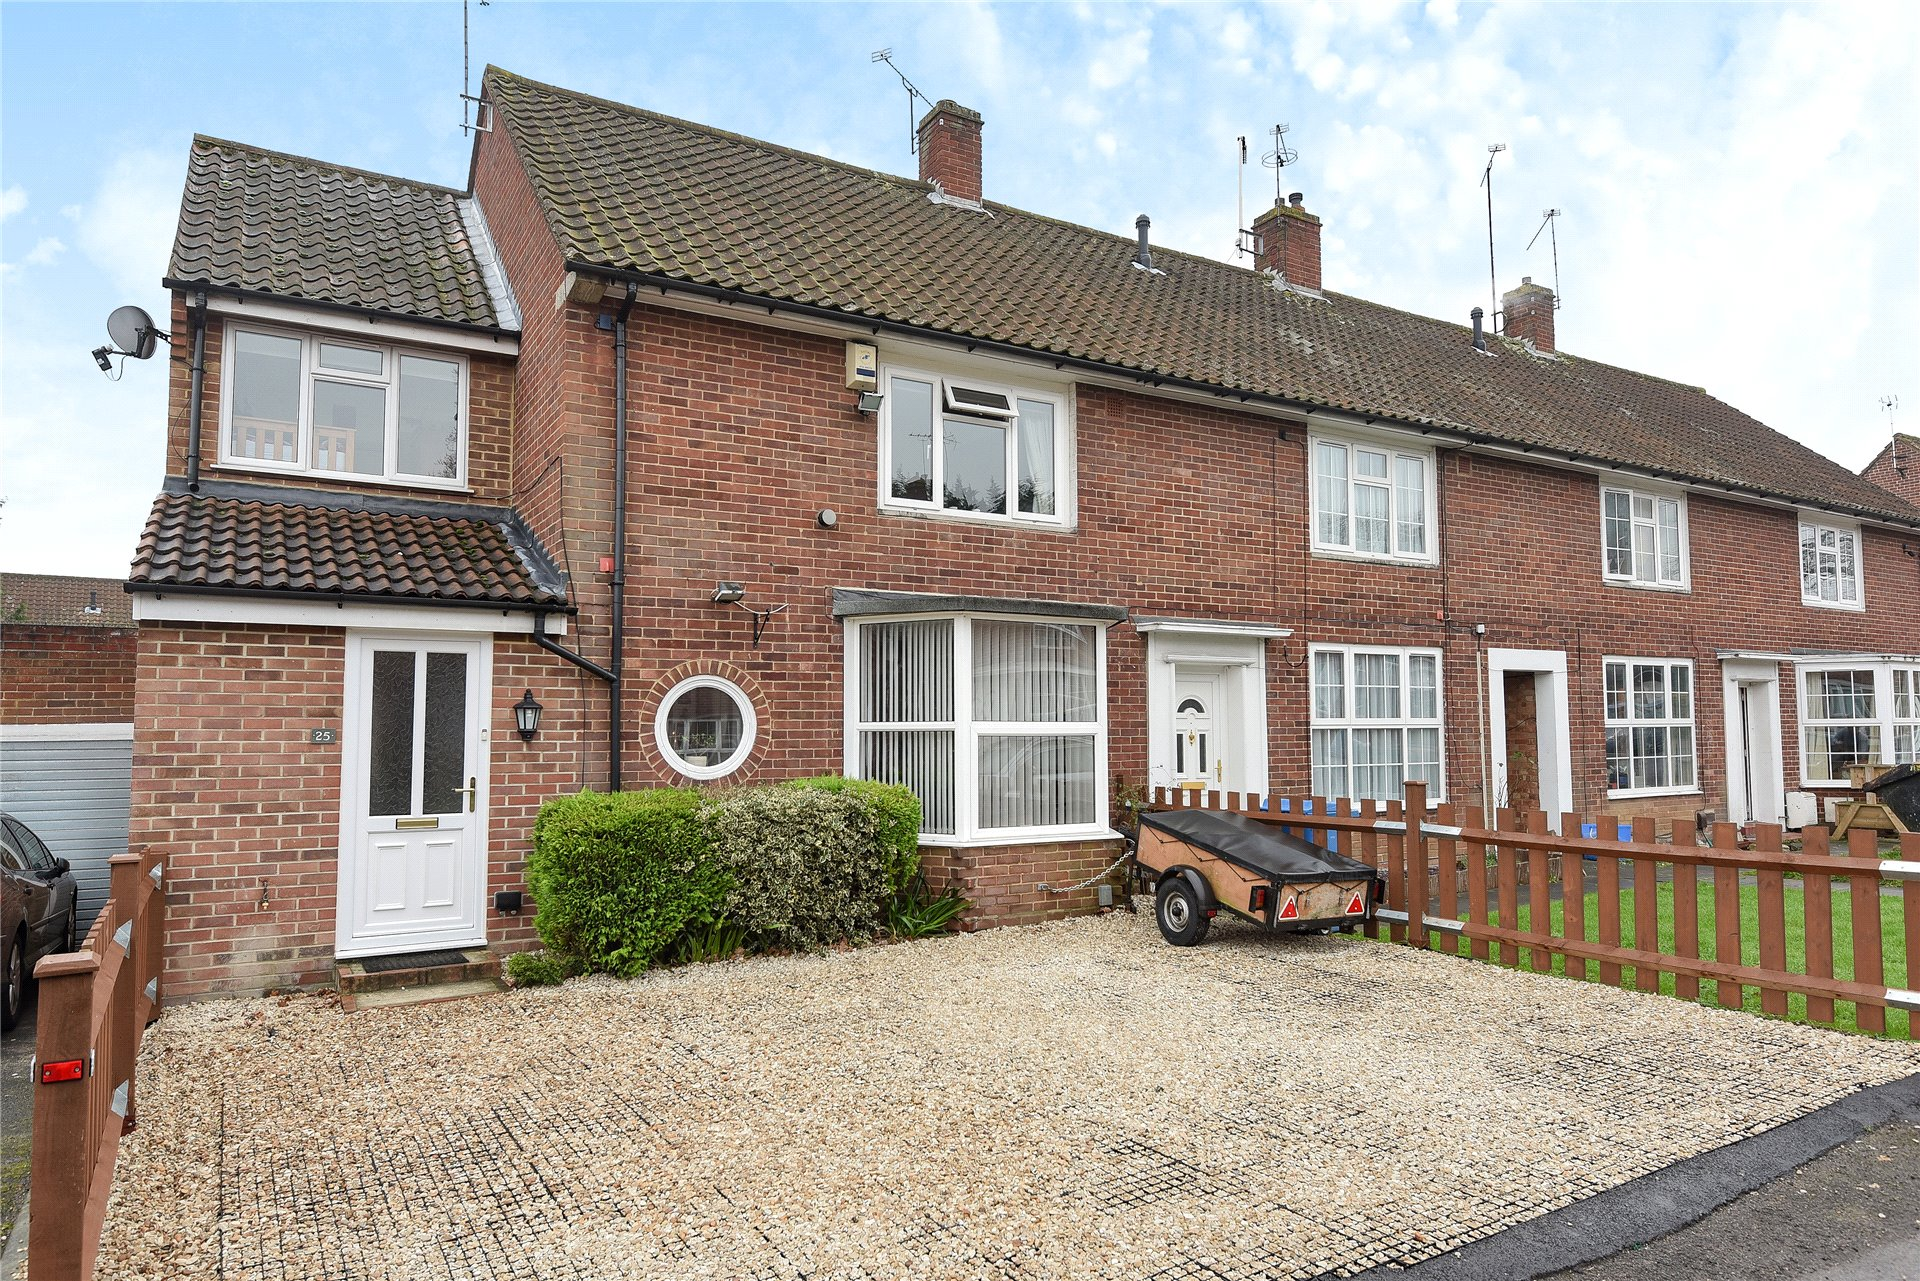 3 Bedrooms End Of Terrace House for sale in Hawthorn Close, Bracknell, Berkshire, RG42